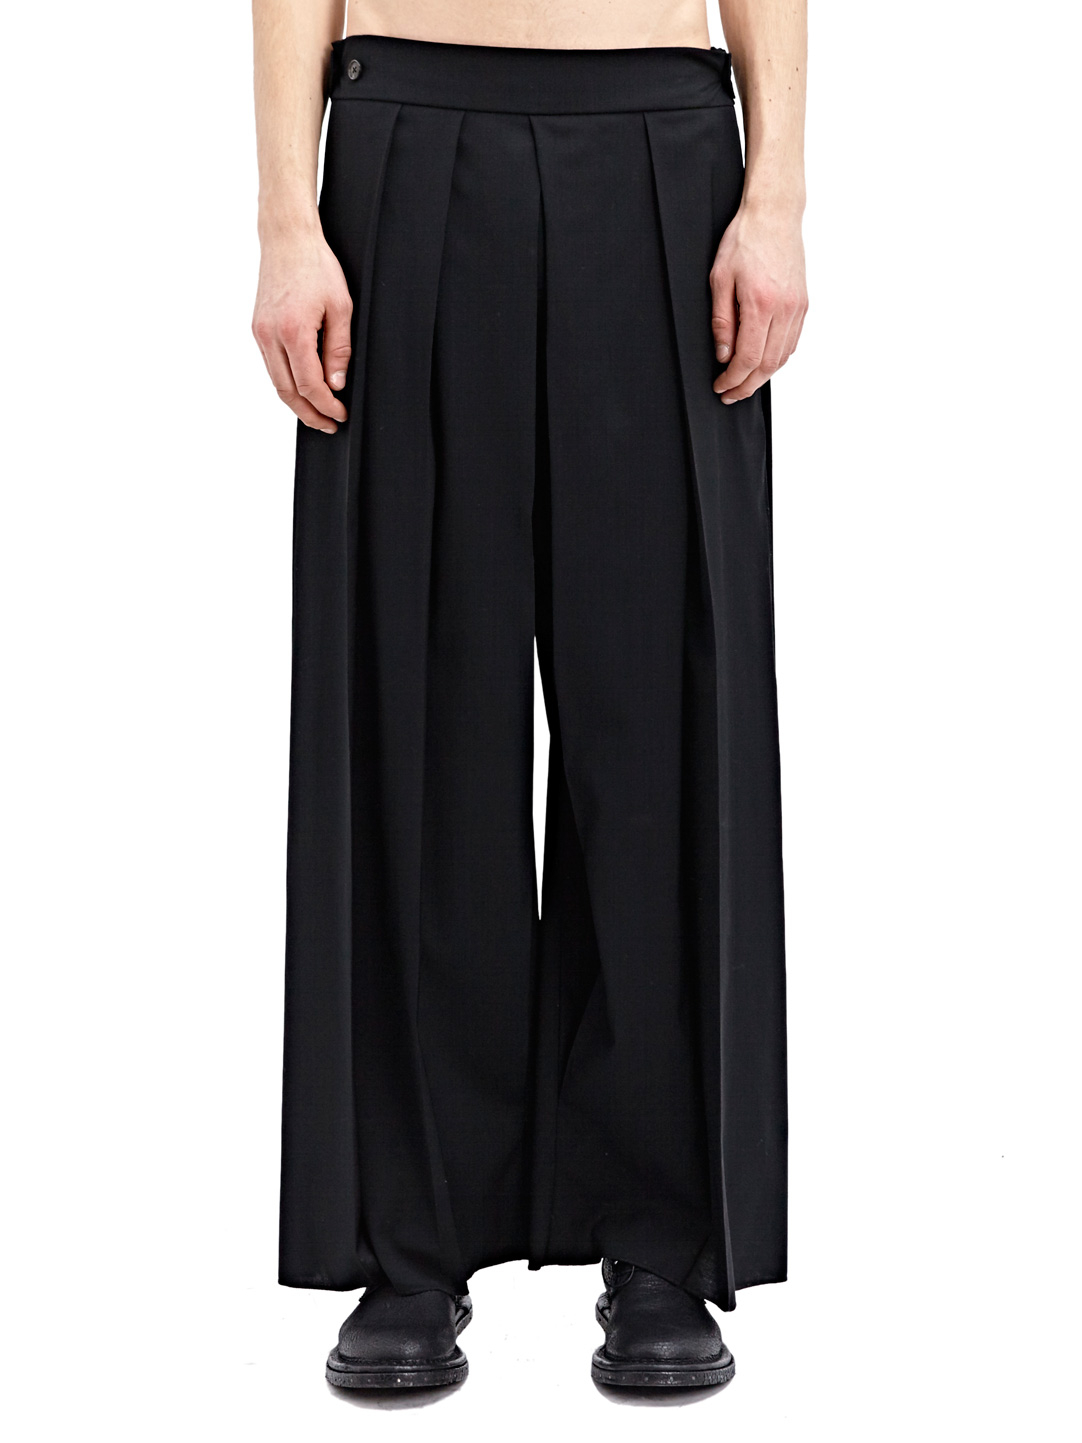 Daniel Ellissa men's wide leg double pleated pants with triple closure and cuffed bottoms. These fashionable pants come in an ultrasoft microfiber finish available in 10 solid colors. Wide leg pants with 22 inch cuffed bottom. Pants come lined to the knee96%(56).